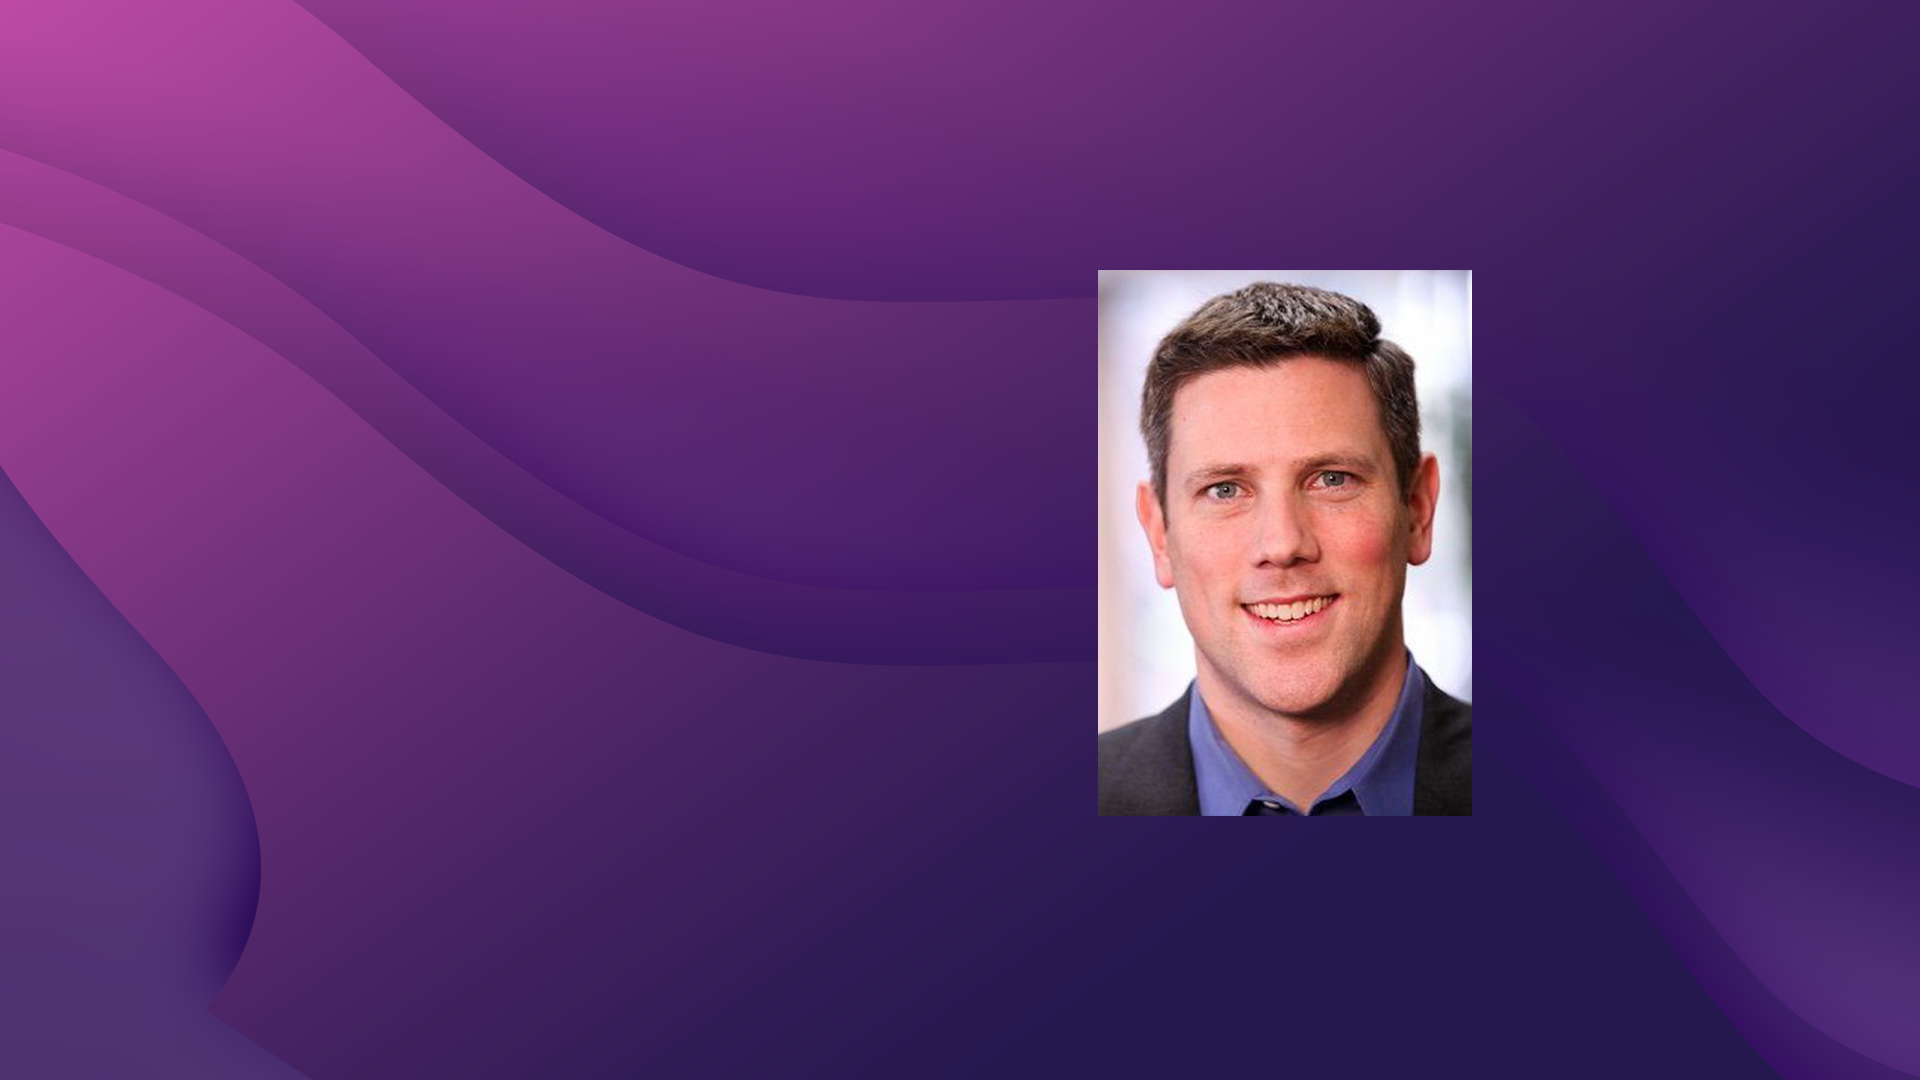 1736: CEO of $400M+ Funded Startup on Culture-first Hypergrowth